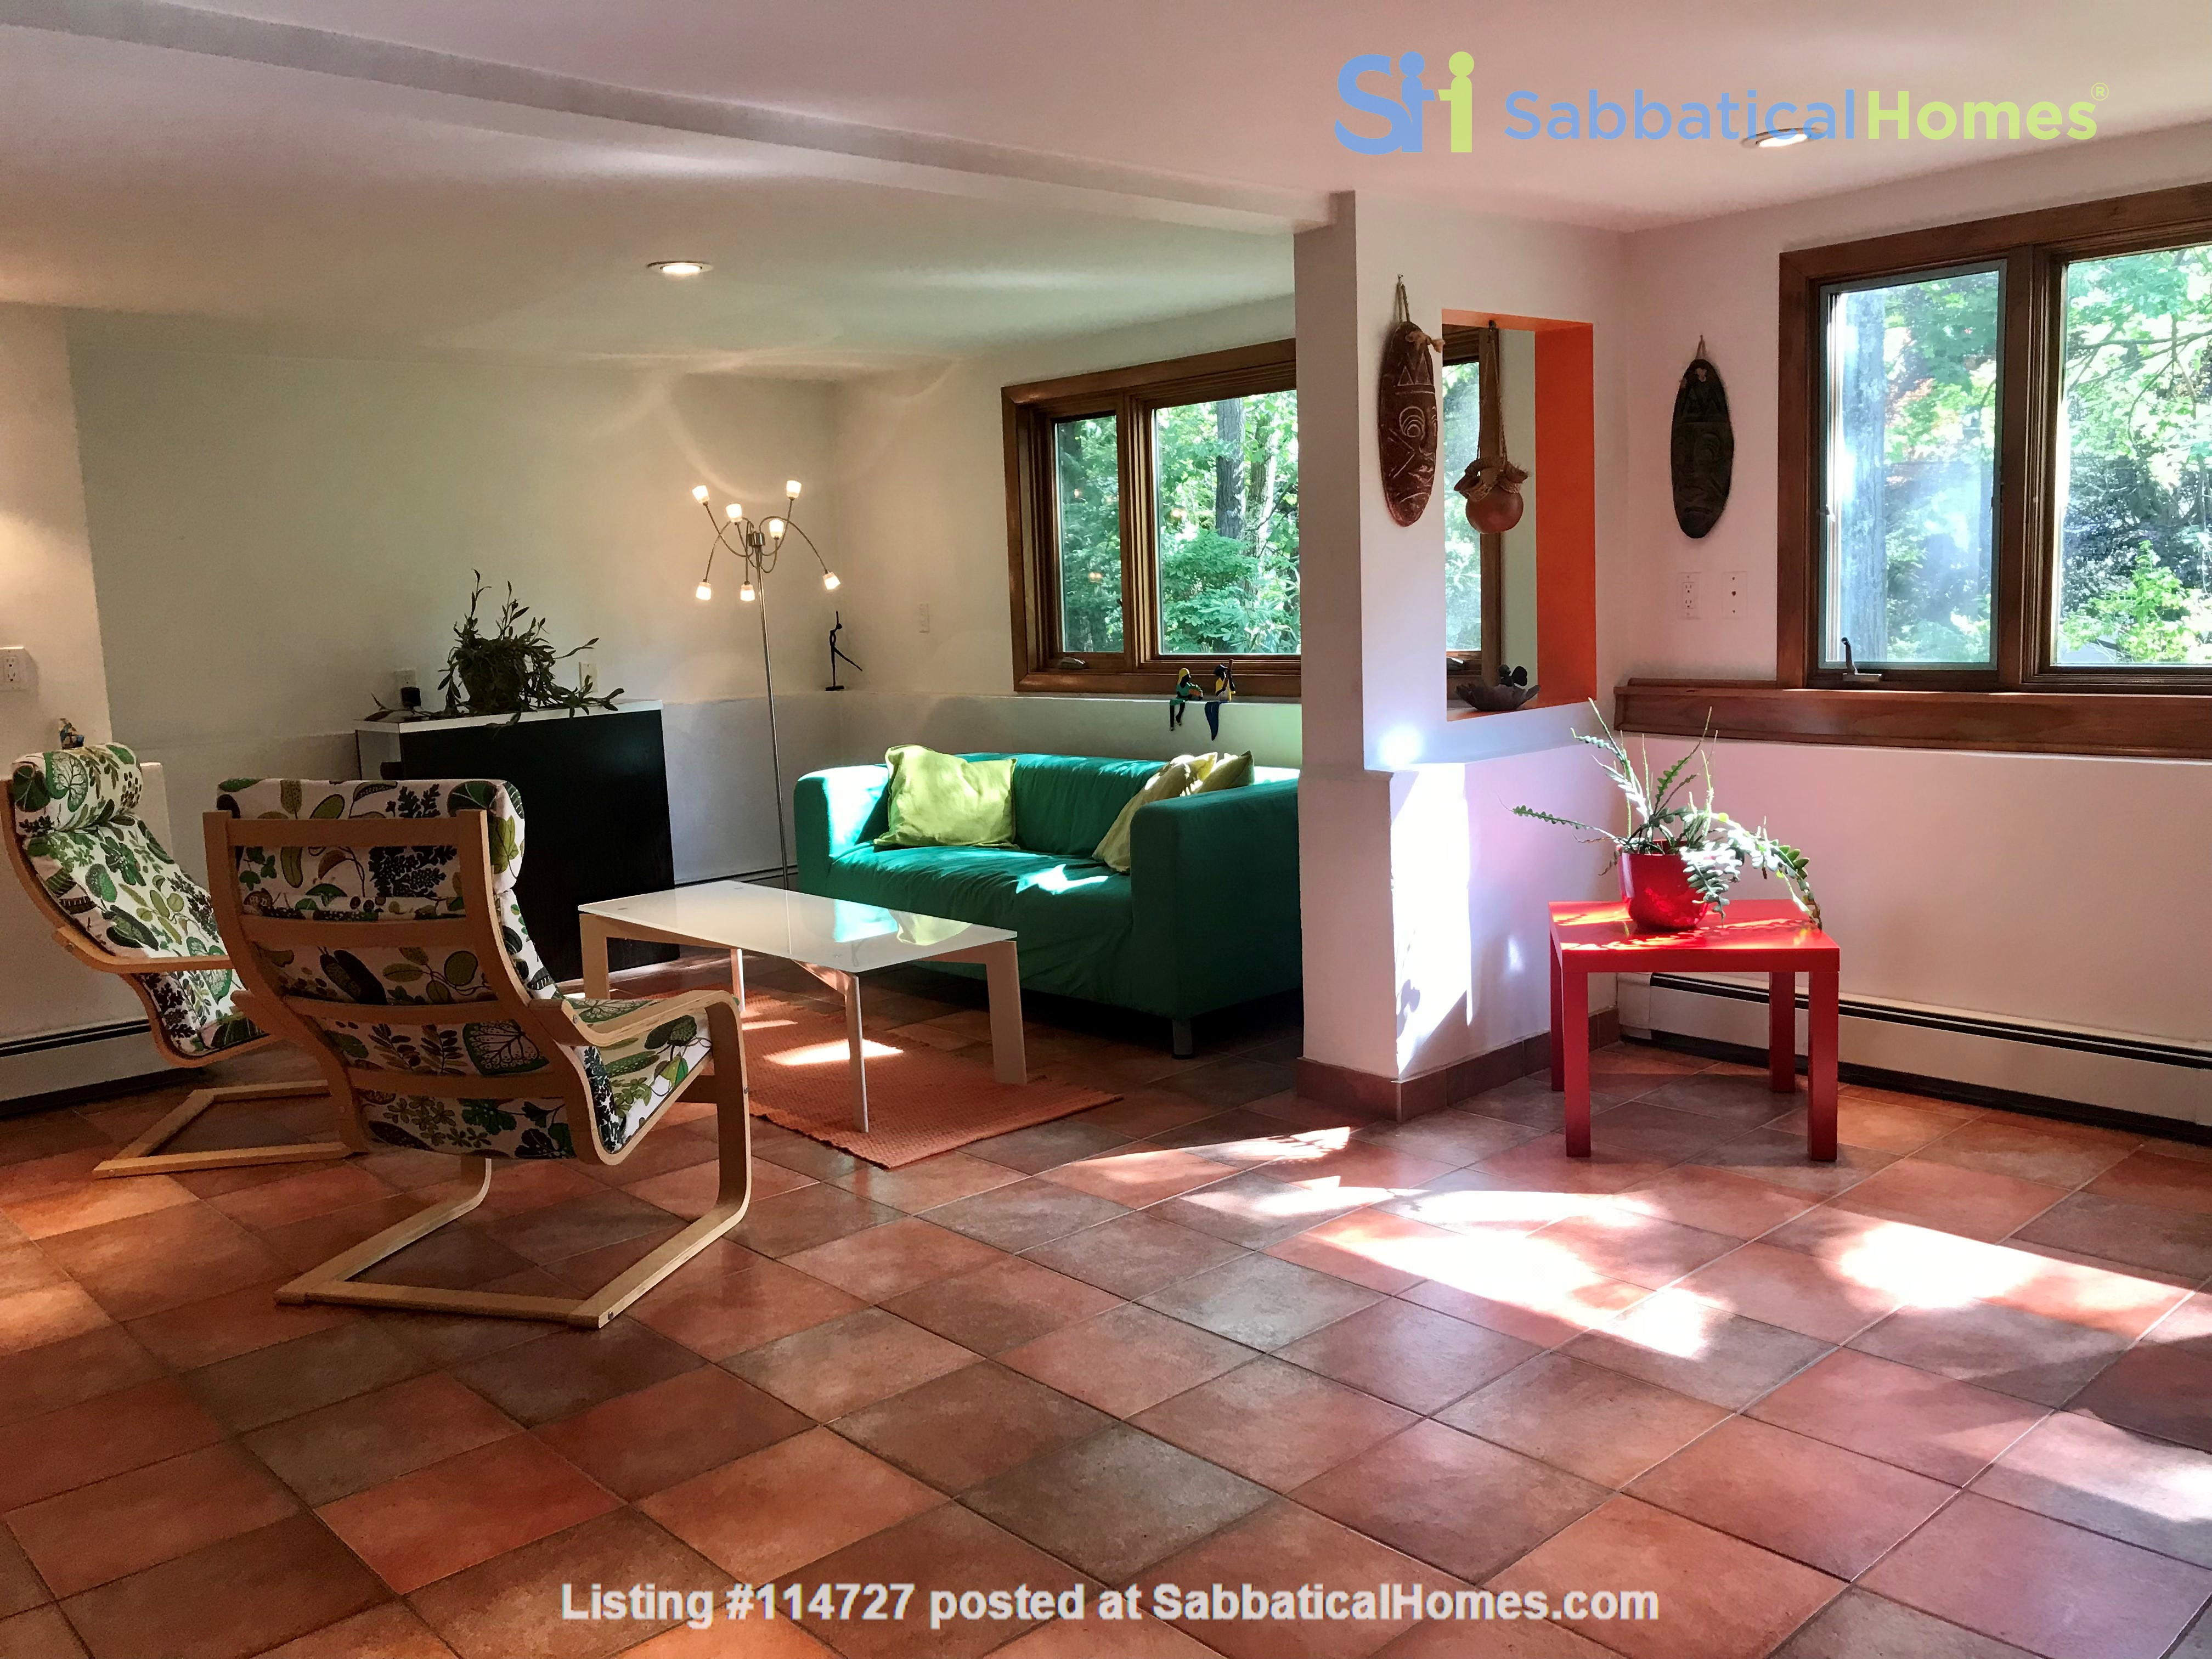 Newly furn &built 2 BR 1025 sq ft apt w/utlts in lux home in Winchester, Ma Home Rental in Winchester, Massachusetts, United States 0